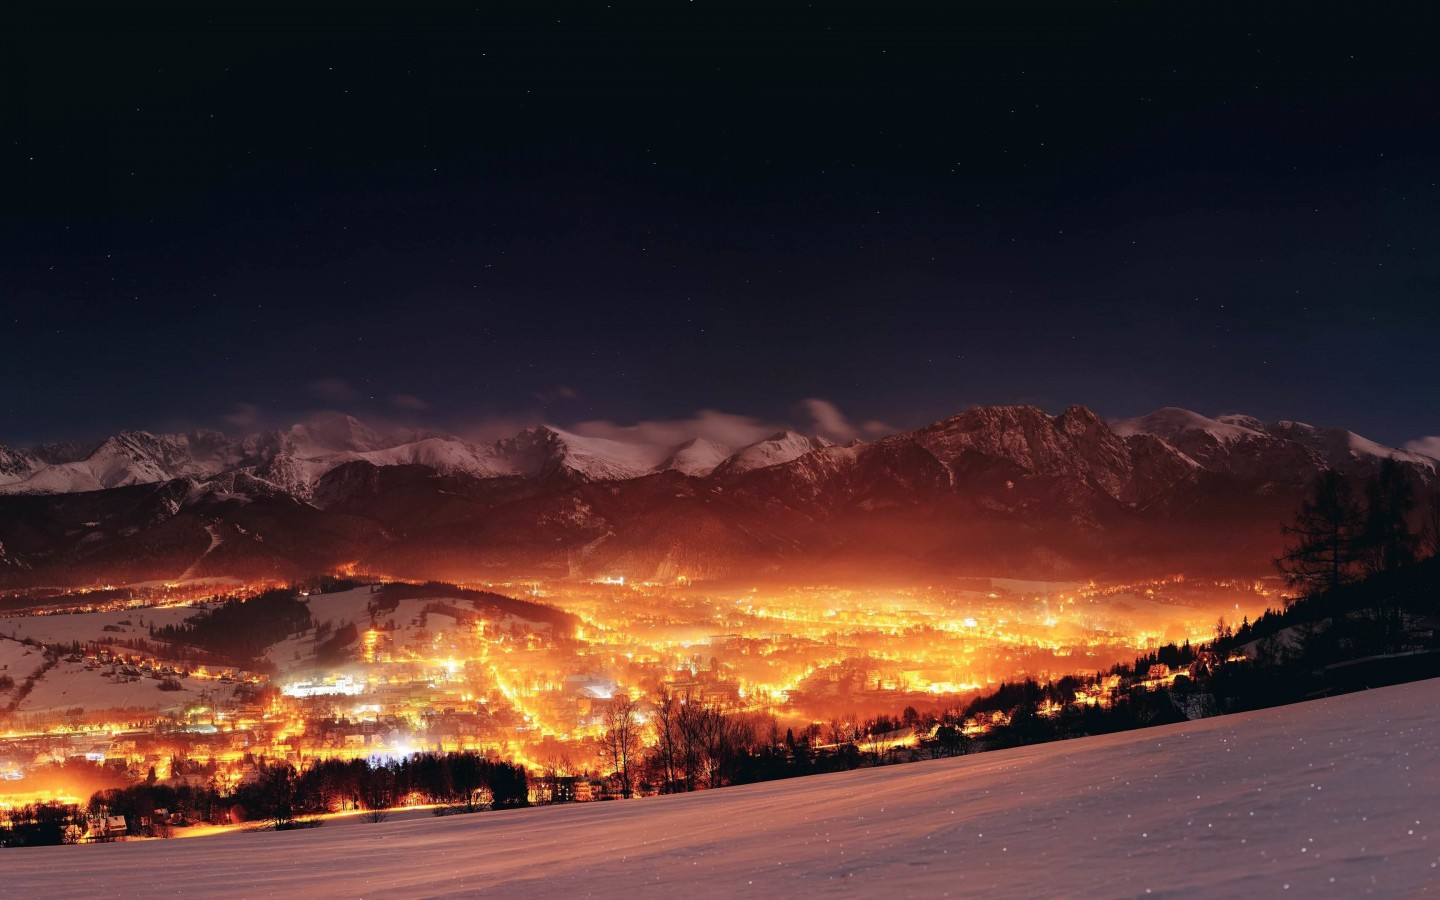 Zakopane City At Night - Poland Wallpaper for Desktop 1440x900